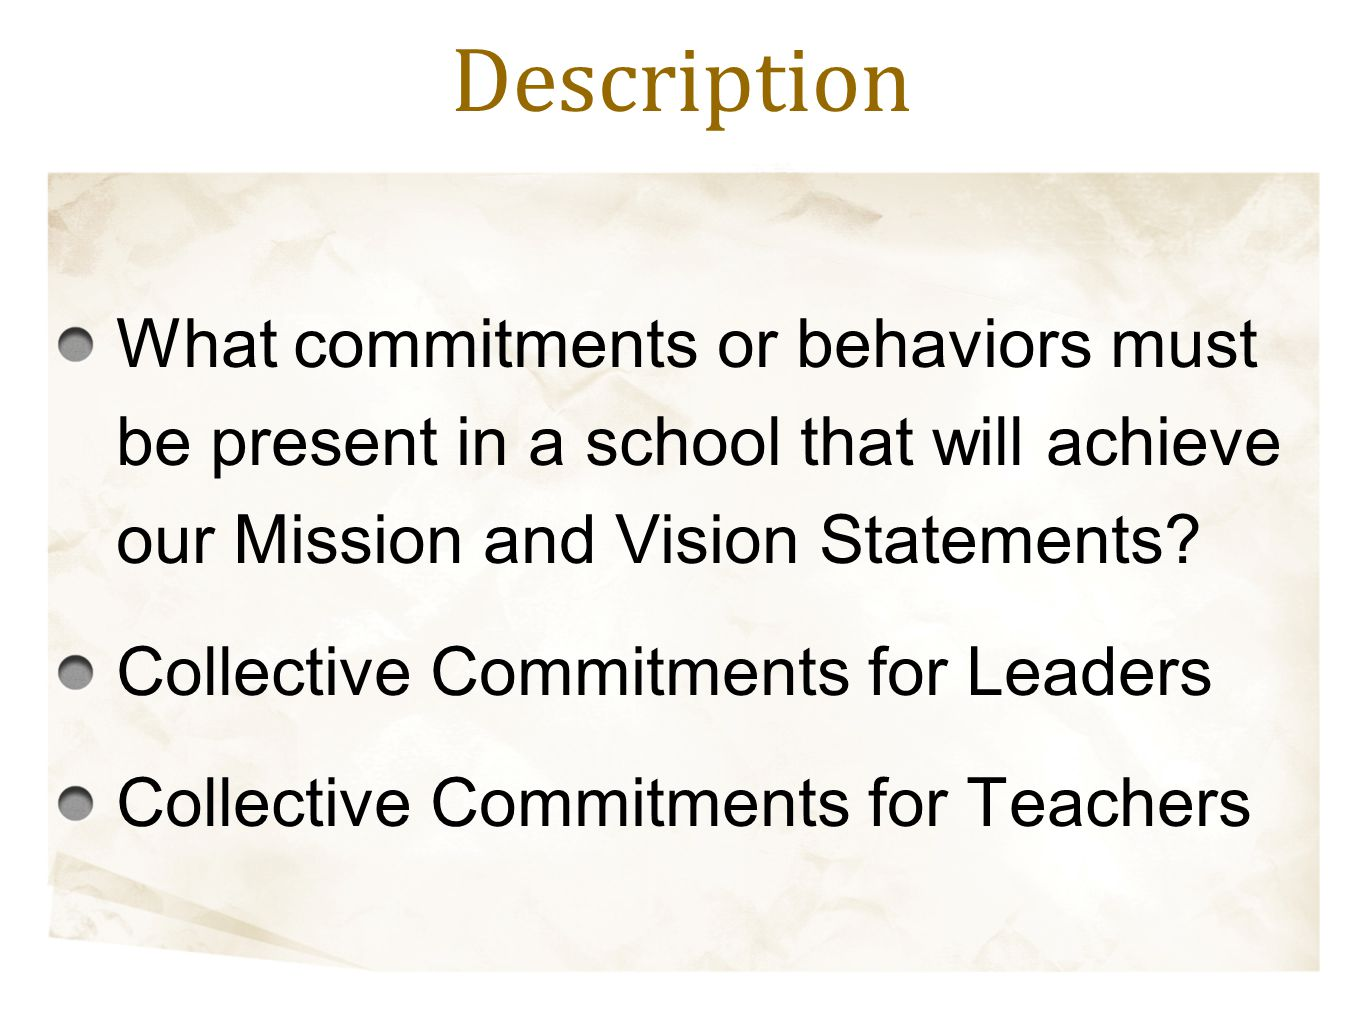 Description What commitments or behaviors must be present in a school that will achieve our Mission and Vision Statements